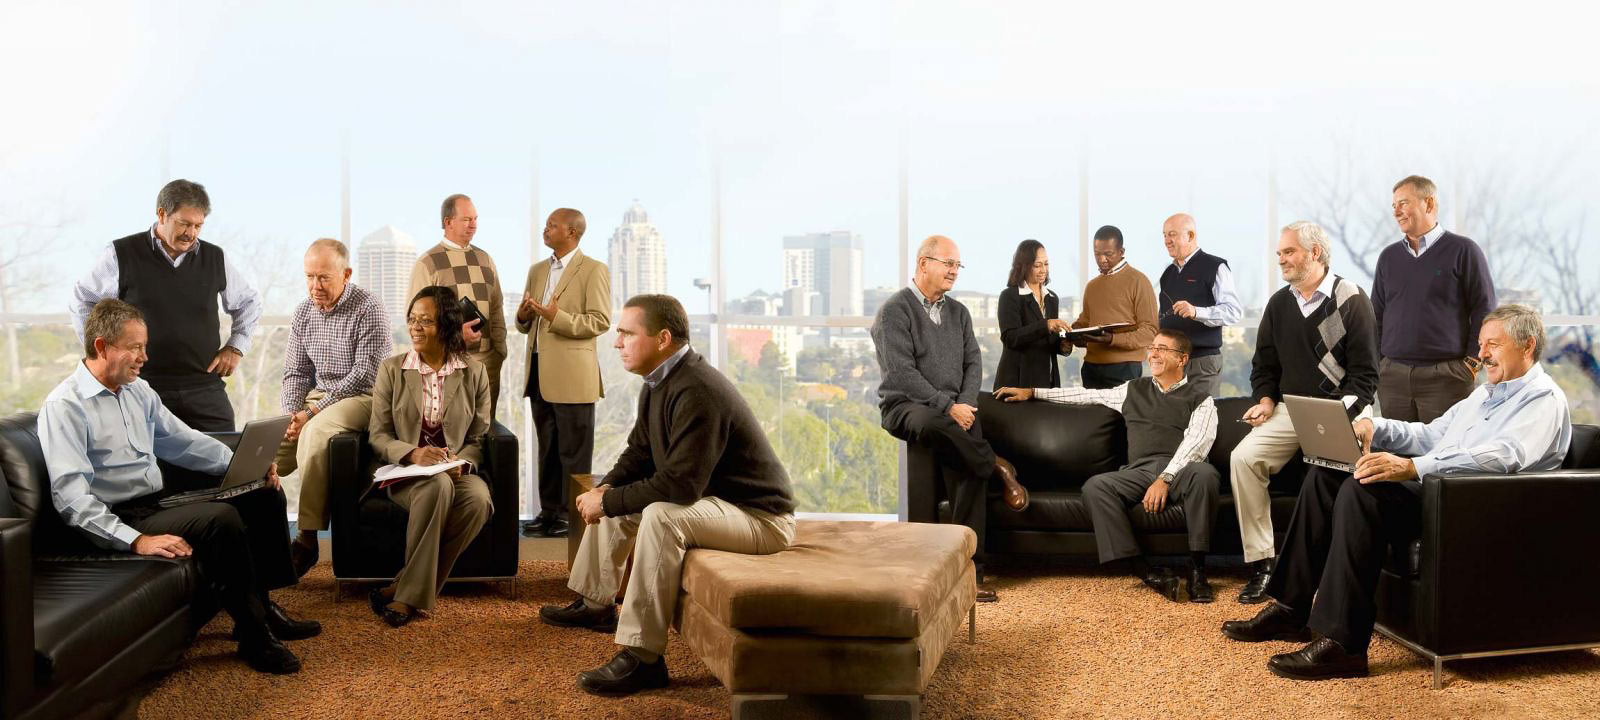 Corporate photography - Executive committee of construction company